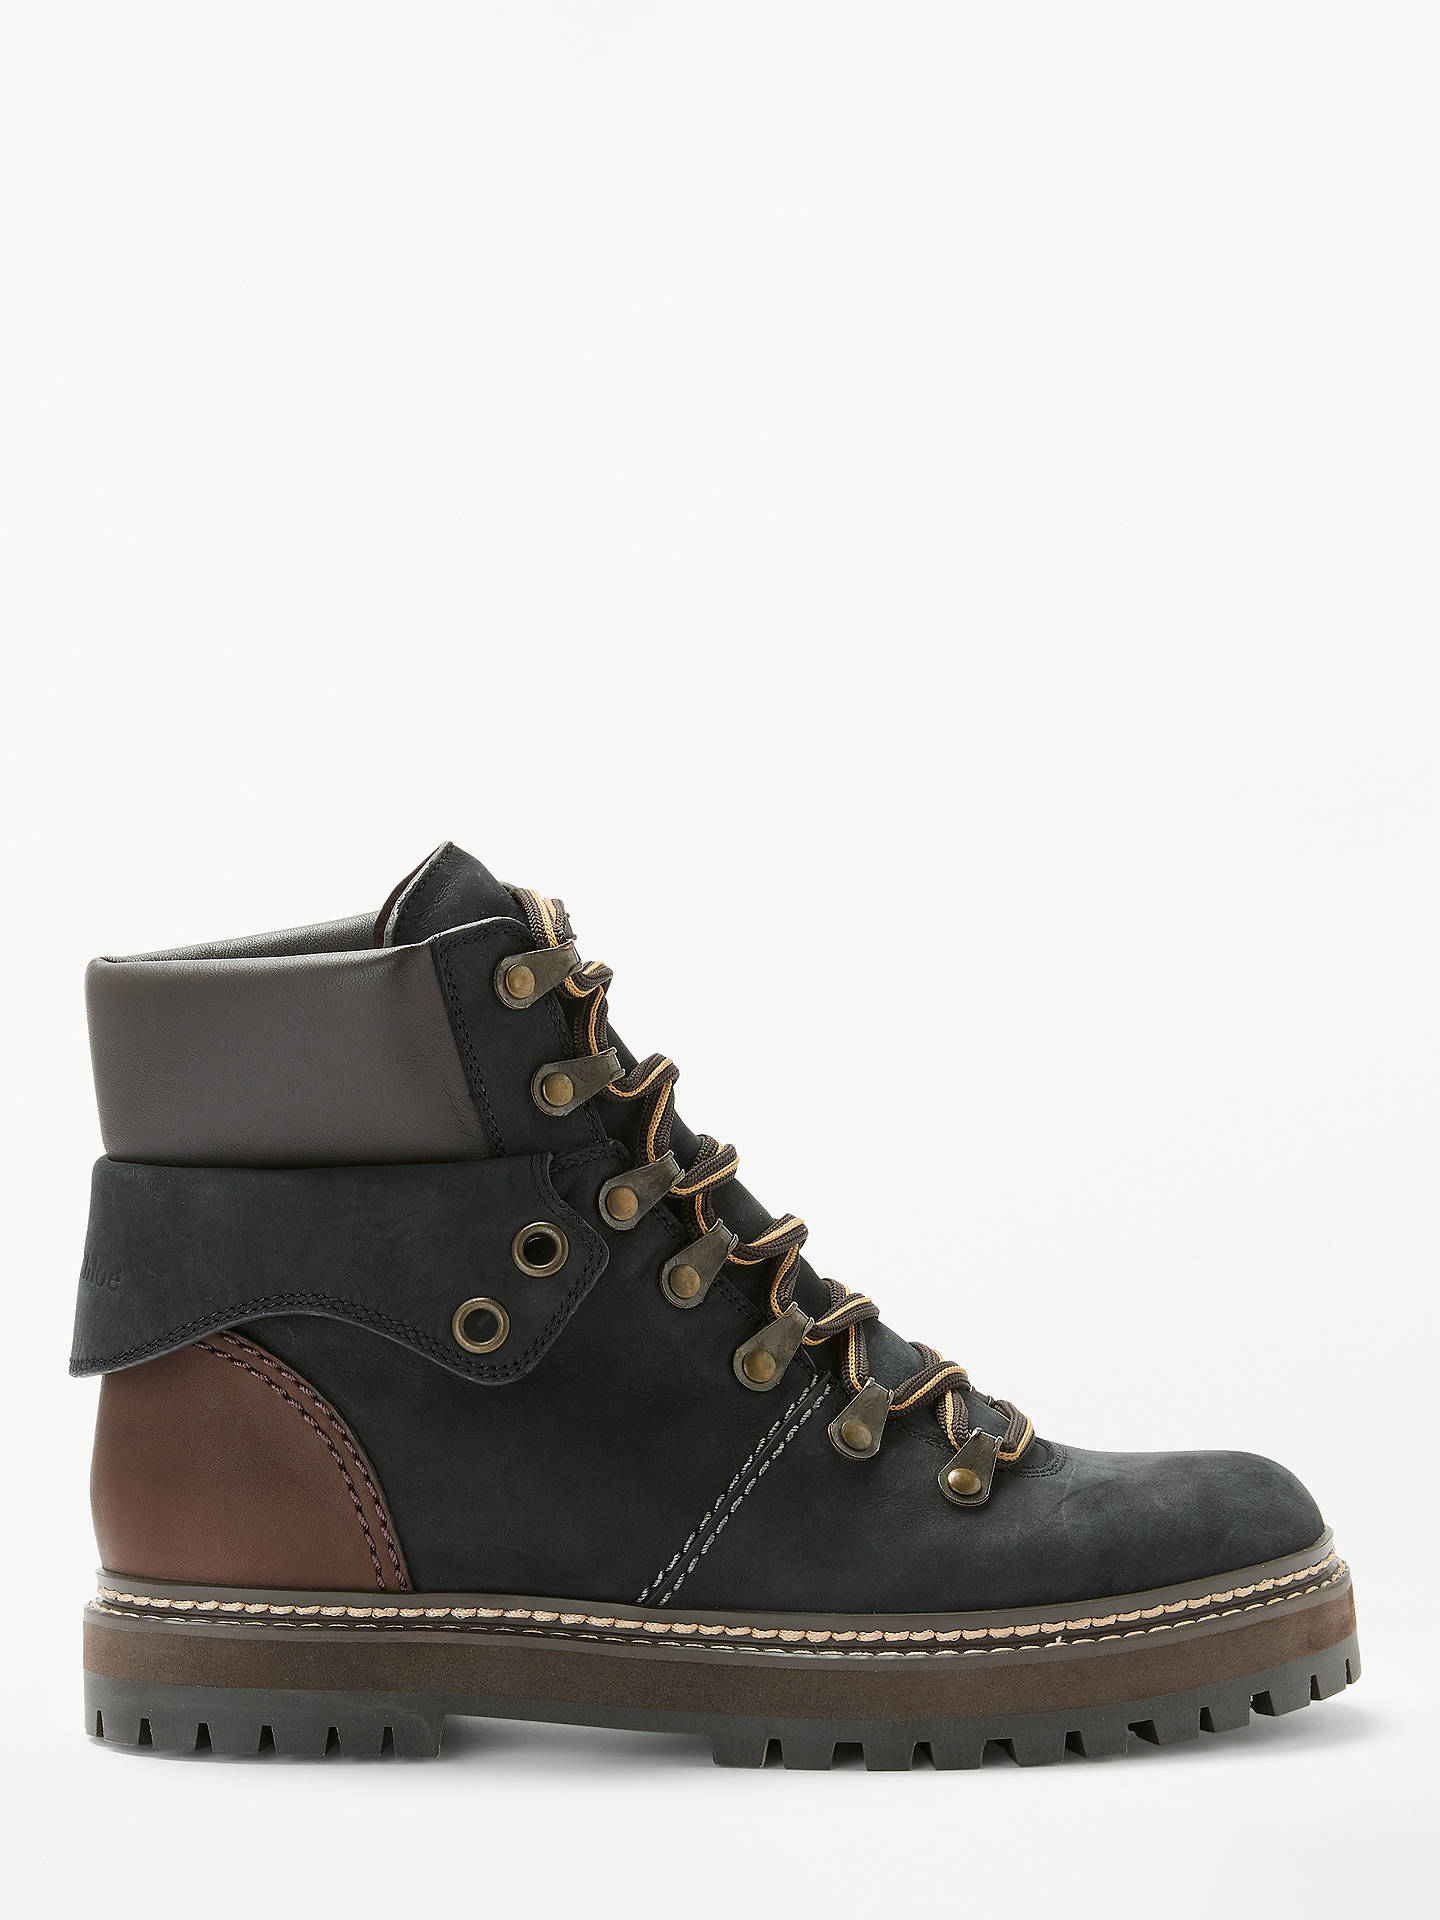 BuySee By Chloé Lace Up Ankle Boots, Dark Brown Suede, 4 Online at johnlewis.com